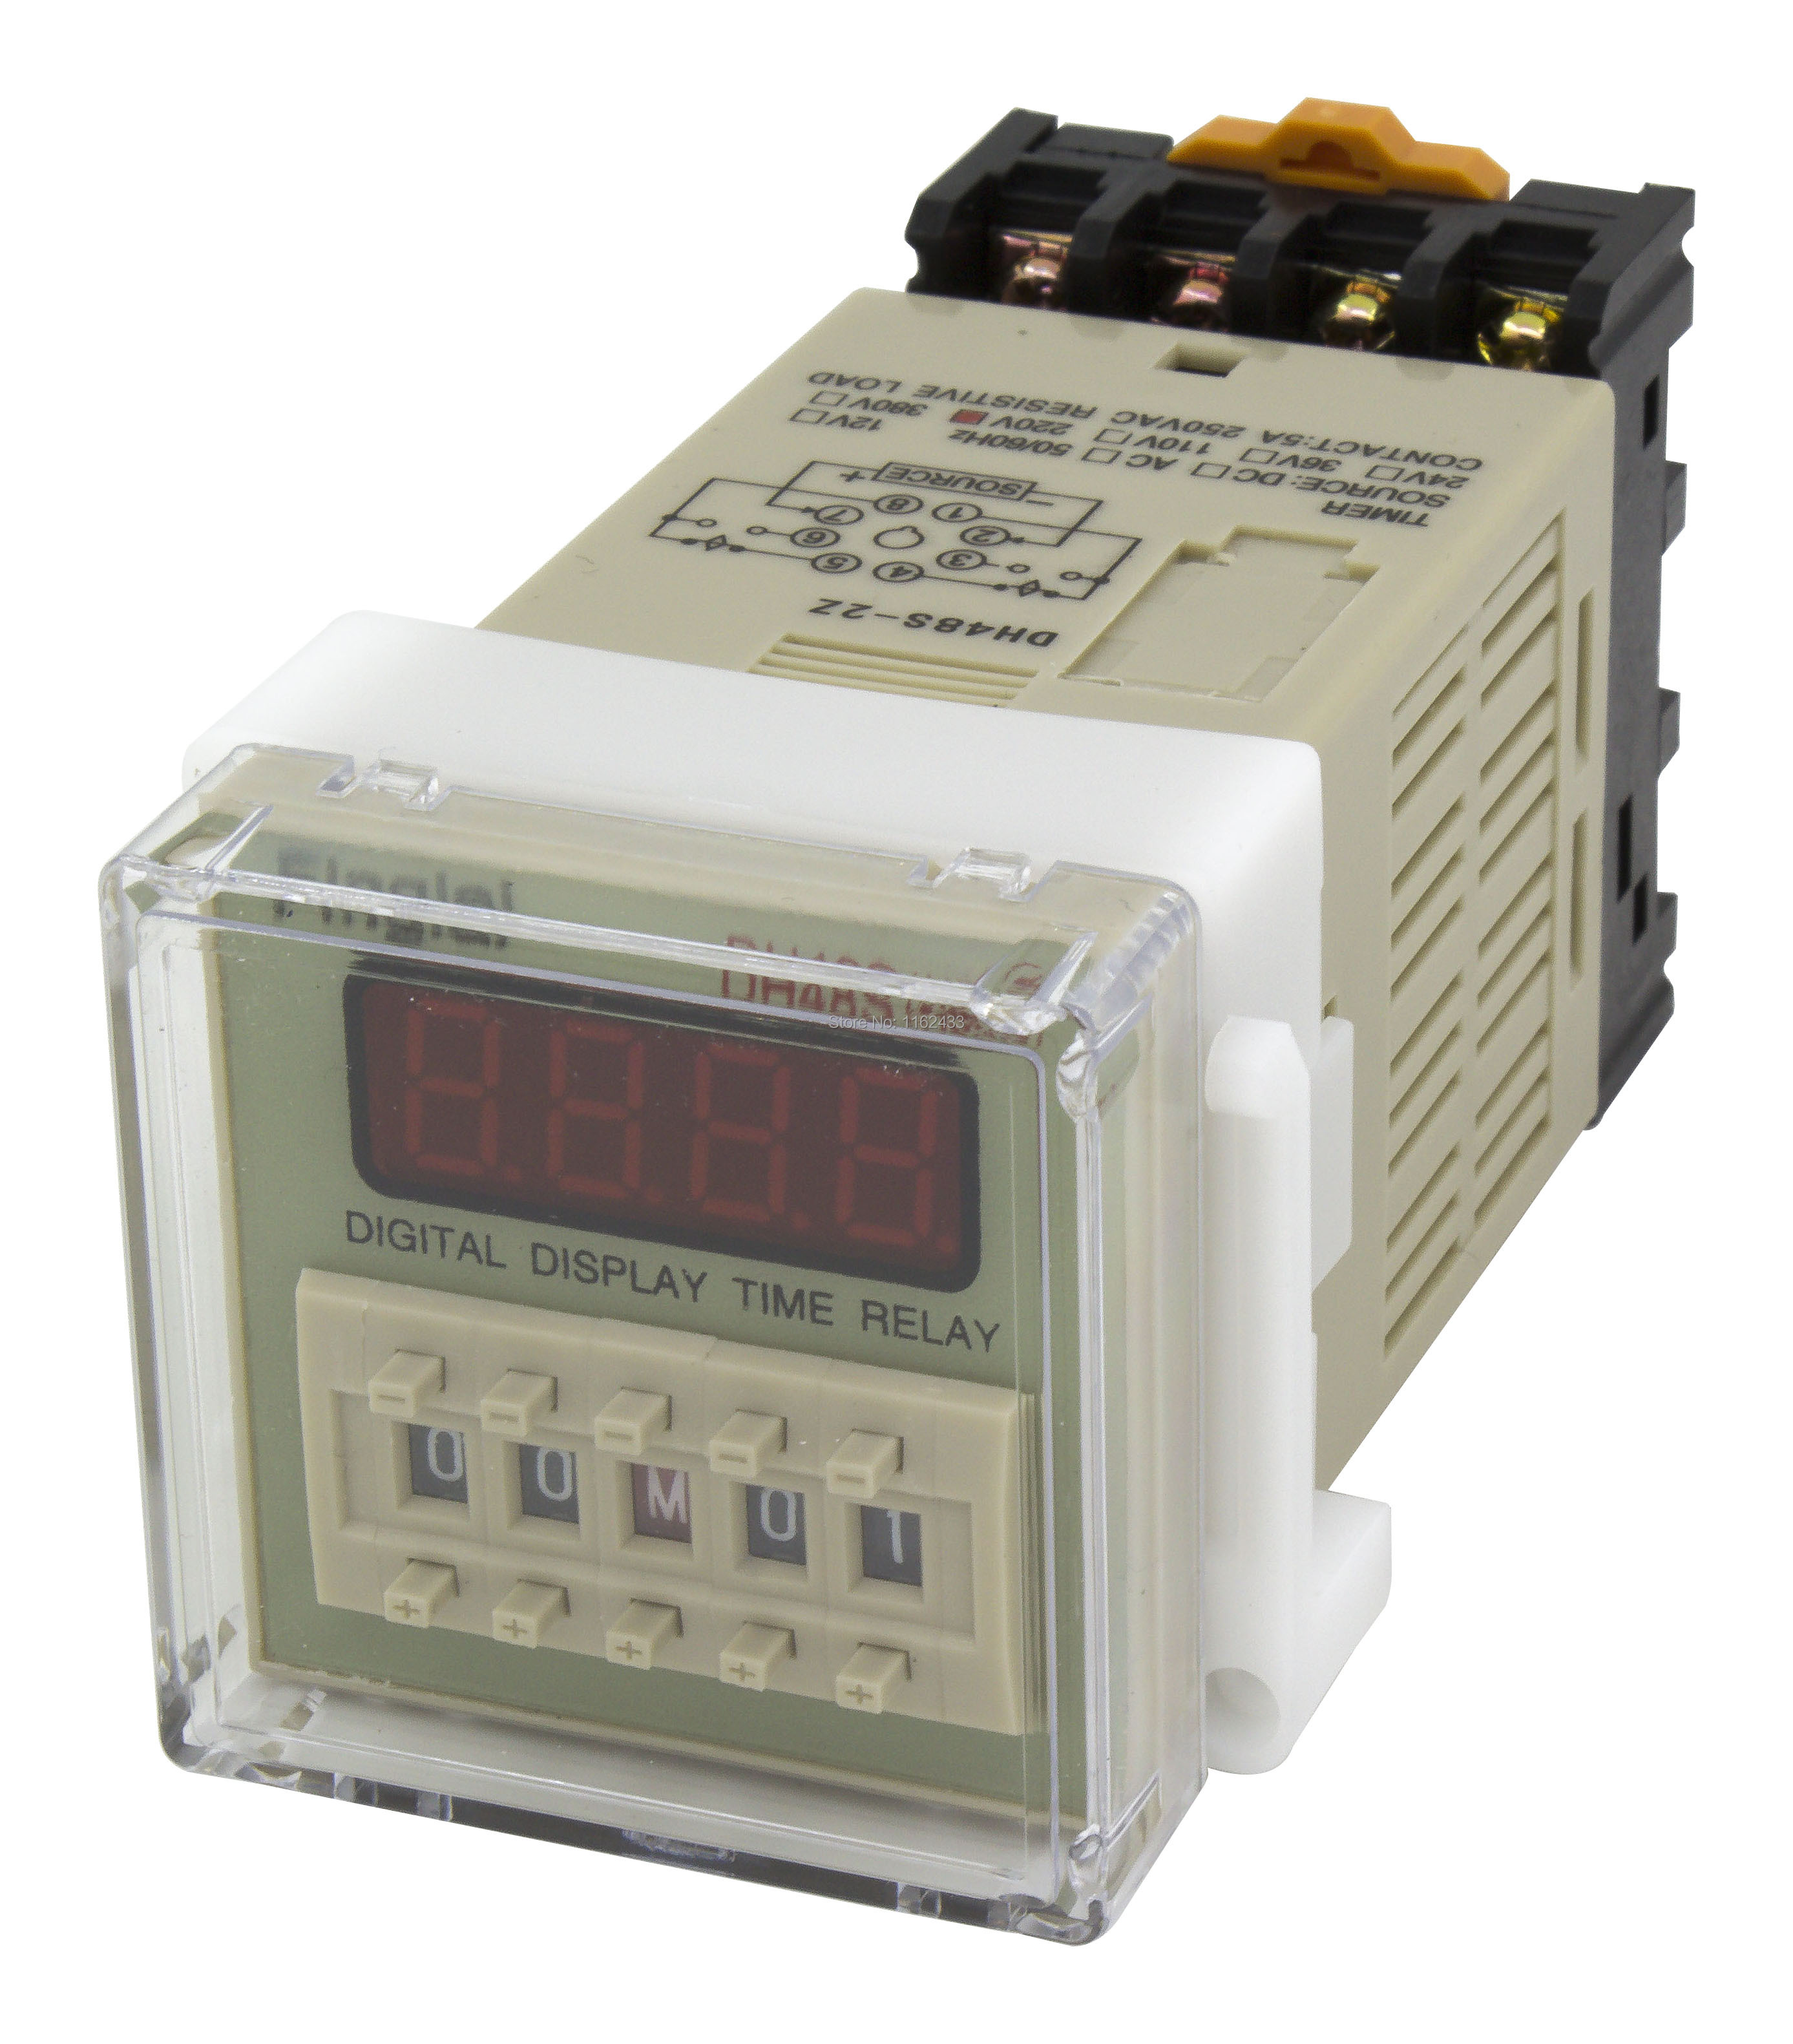 DH48S-2Z on delay DPDT time relay AC 220V 110V AC/DC 24V 12V with socket DH48S series delay timer with baseDH48S-2Z on delay DPDT time relay AC 220V 110V AC/DC 24V 12V with socket DH48S series delay timer with base